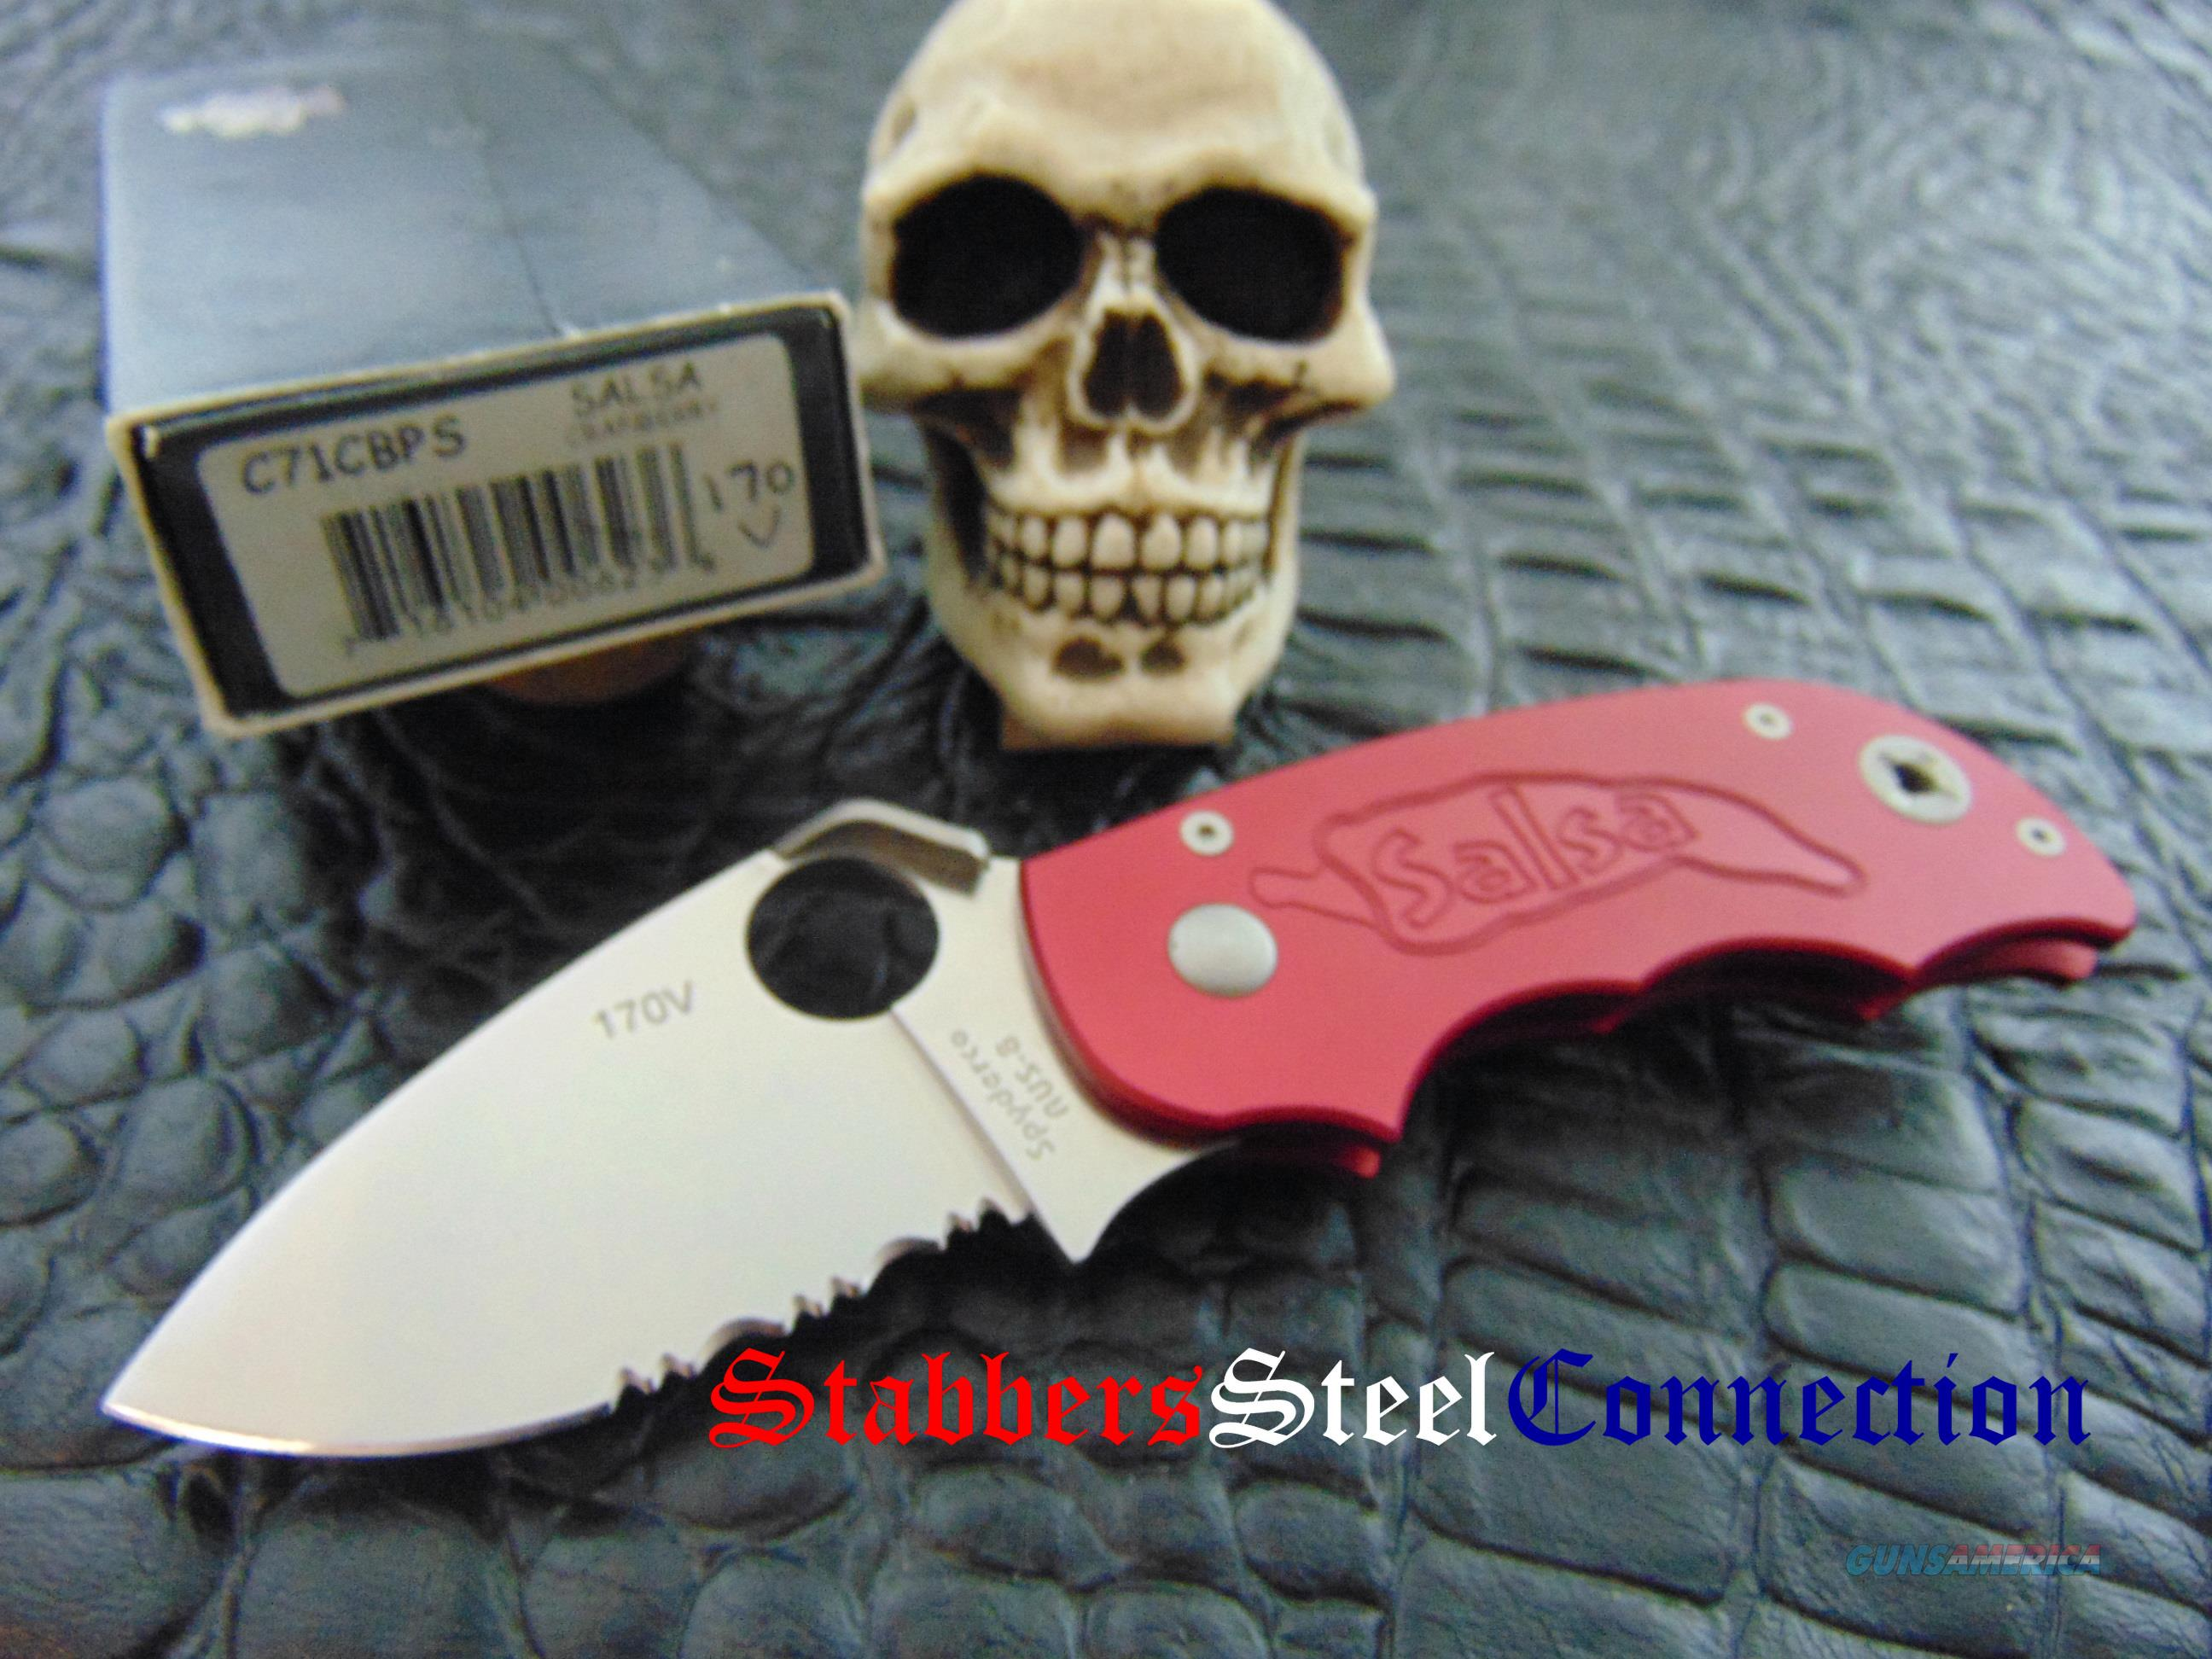 Spyderco Knives Vintage Salsa Model C71CBPS Collectors Club knife numbered 170 of 200  Non-Guns > Knives/Swords > Knives > Folding Blade > Imported